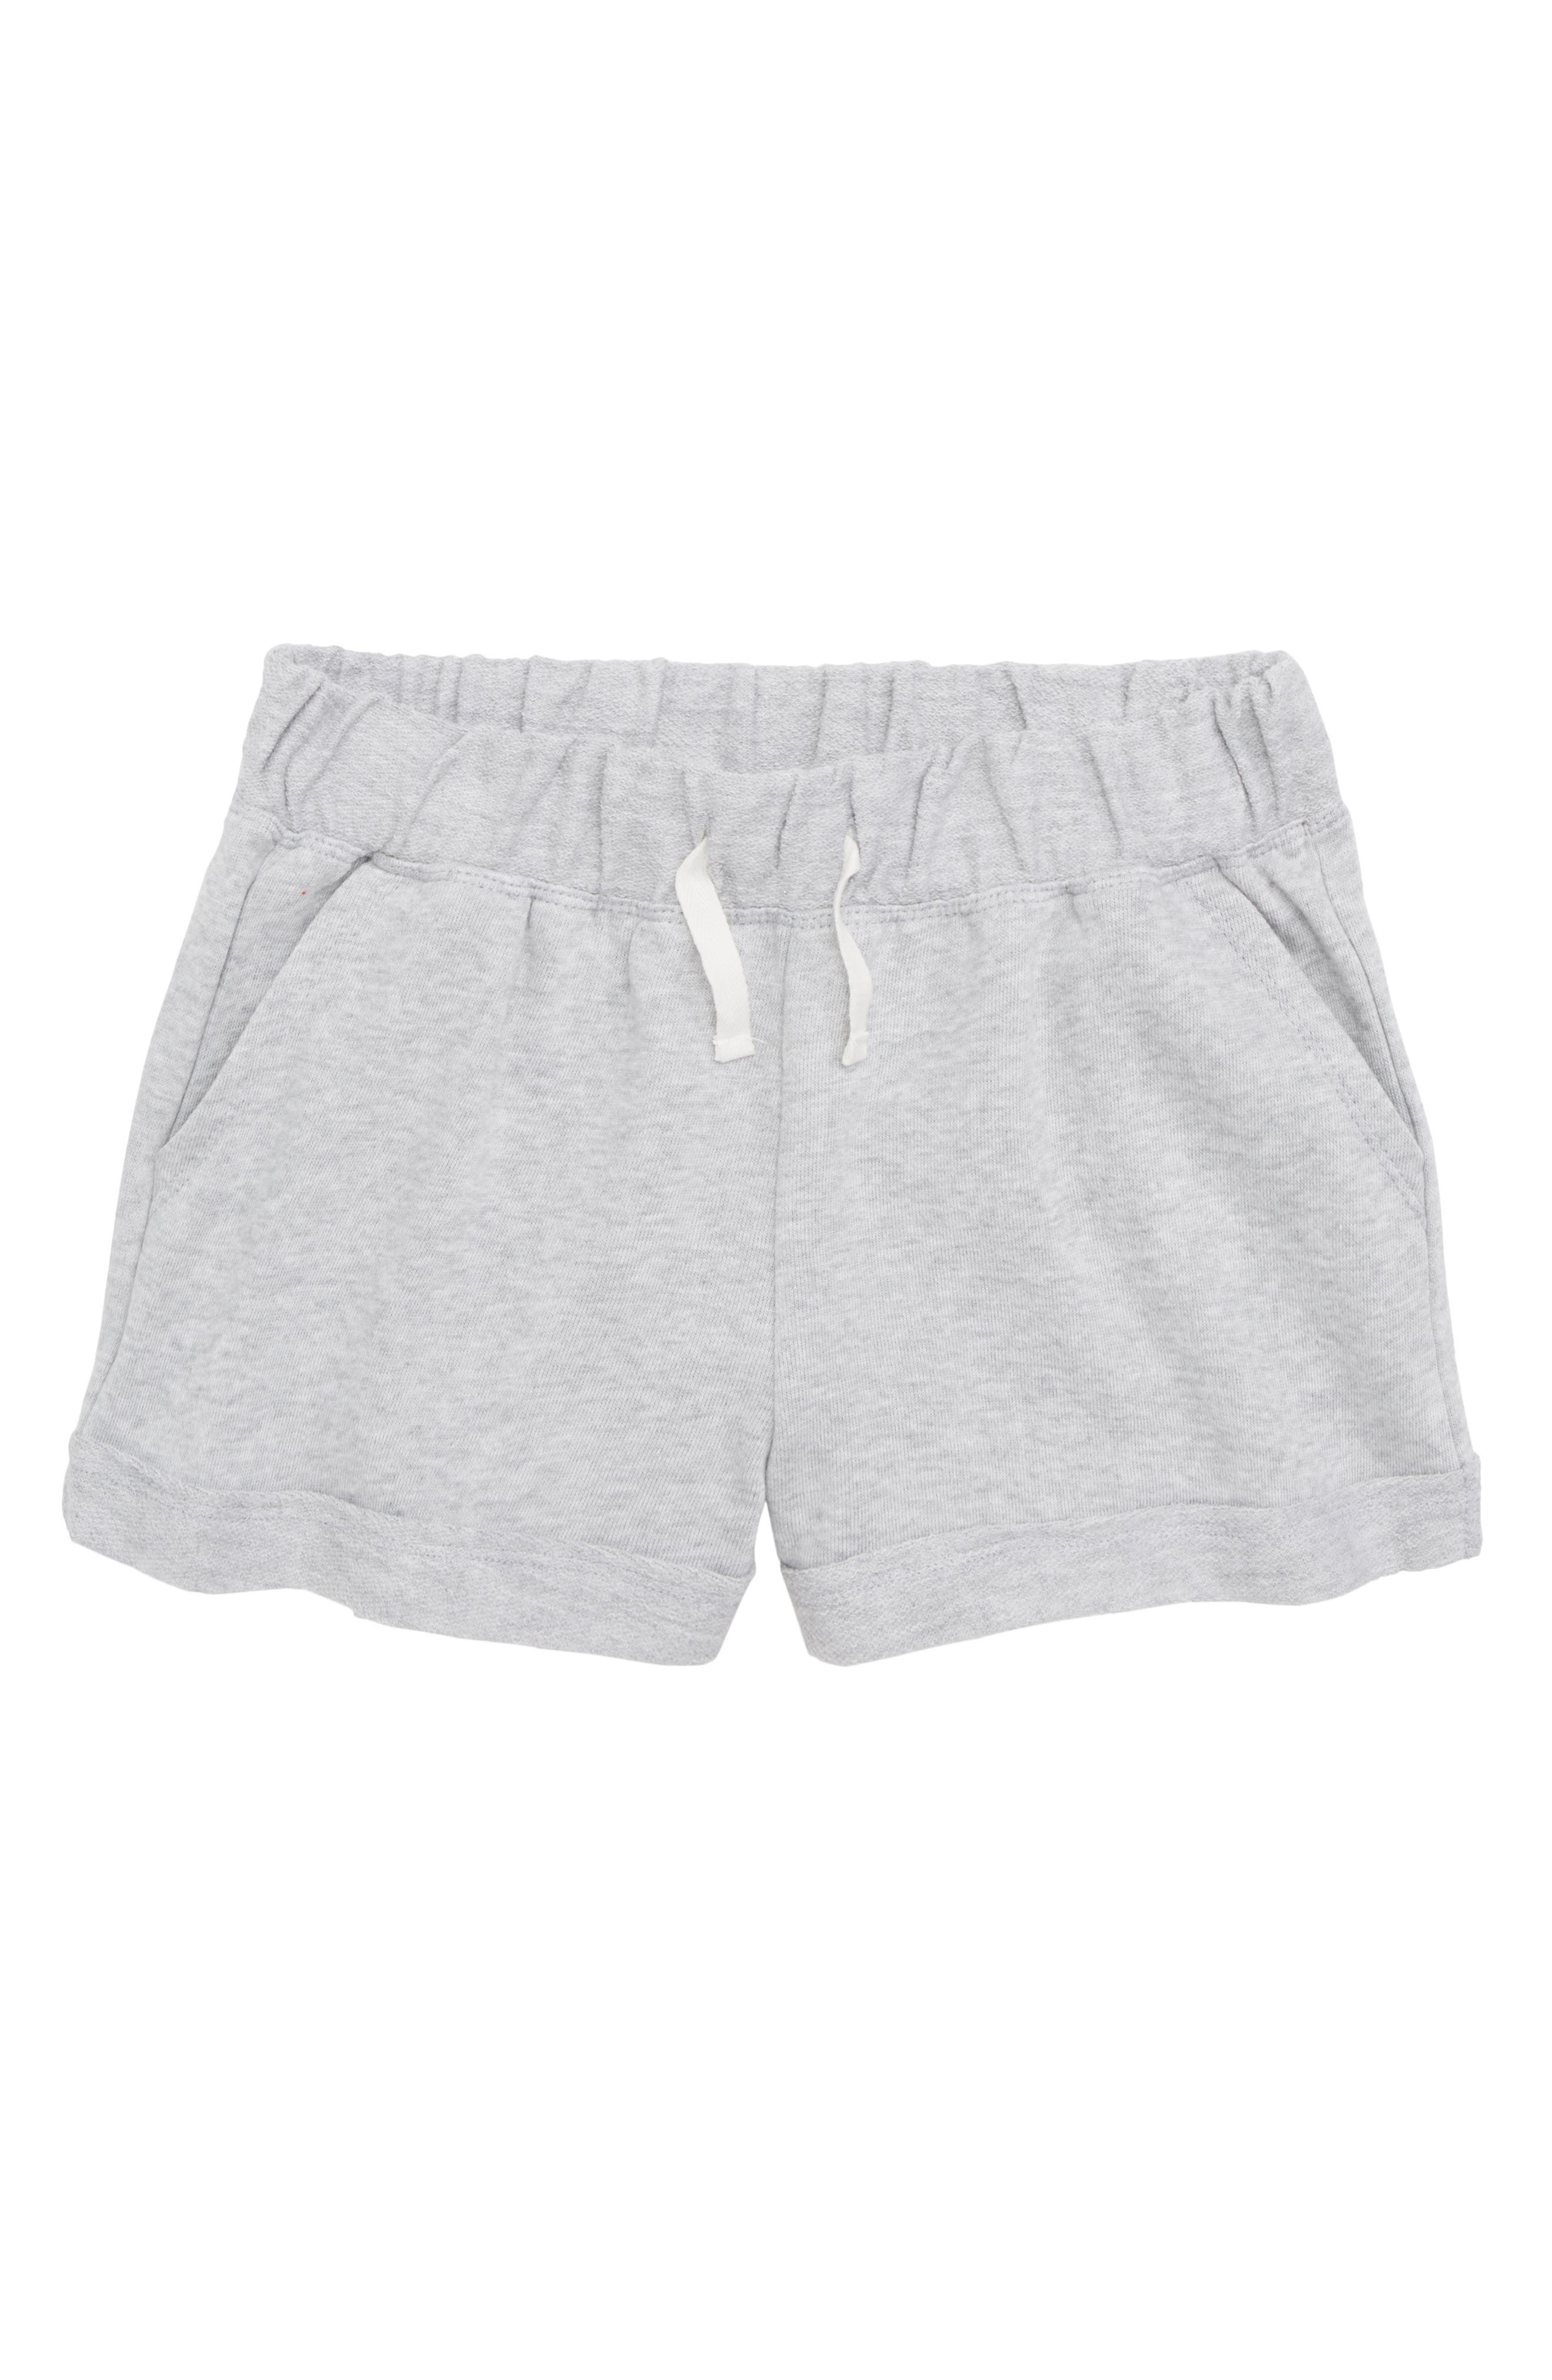 Cuff French Terry Shorts,                             Main thumbnail 1, color,